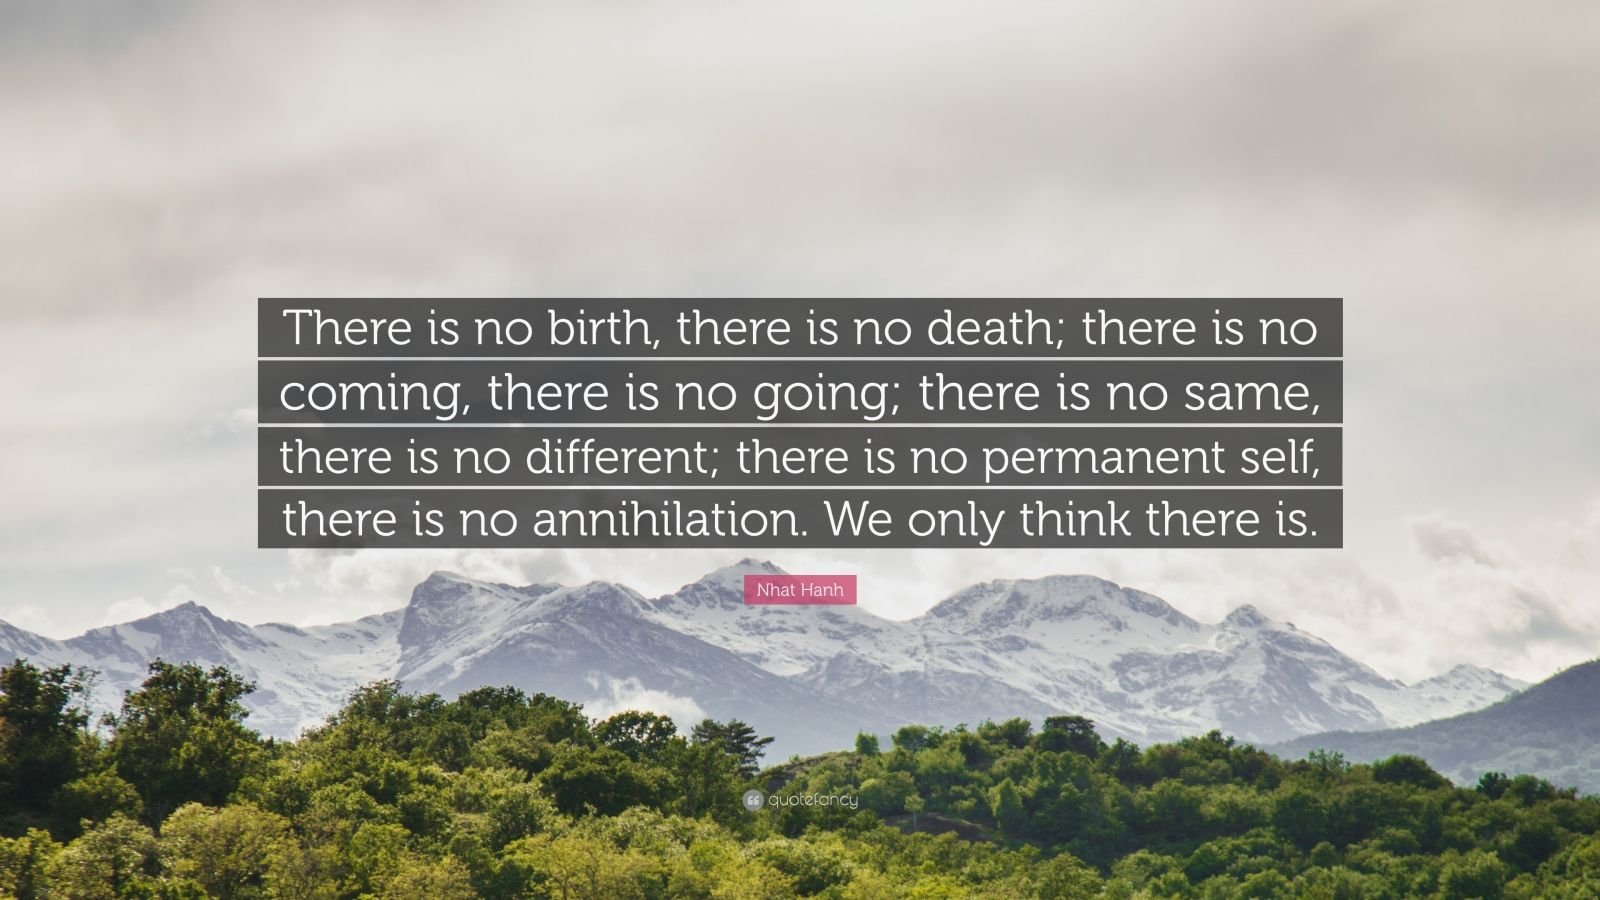 "Nhat Hanh Quote: ""There is no birth, there is no death; there is no coming, there is no going; there is no same, there is no different; there is no permanent self, there is no annihilation. We only think there is."""